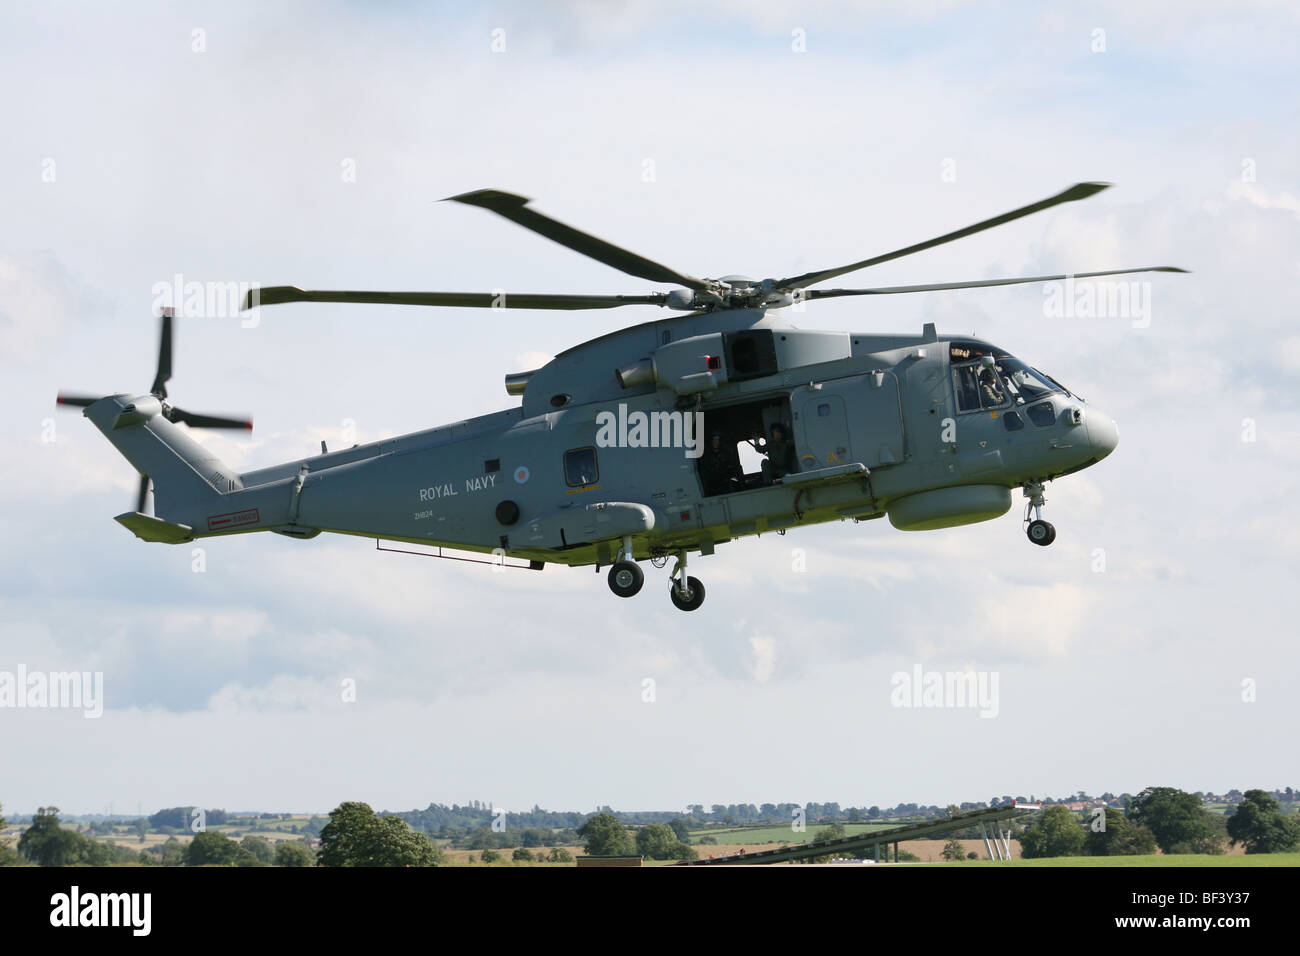 The UK Royal Navy Merlin medium lift helicopter is a variant of the EH101 helicopter developed by AgustaWestland. Stock Photo